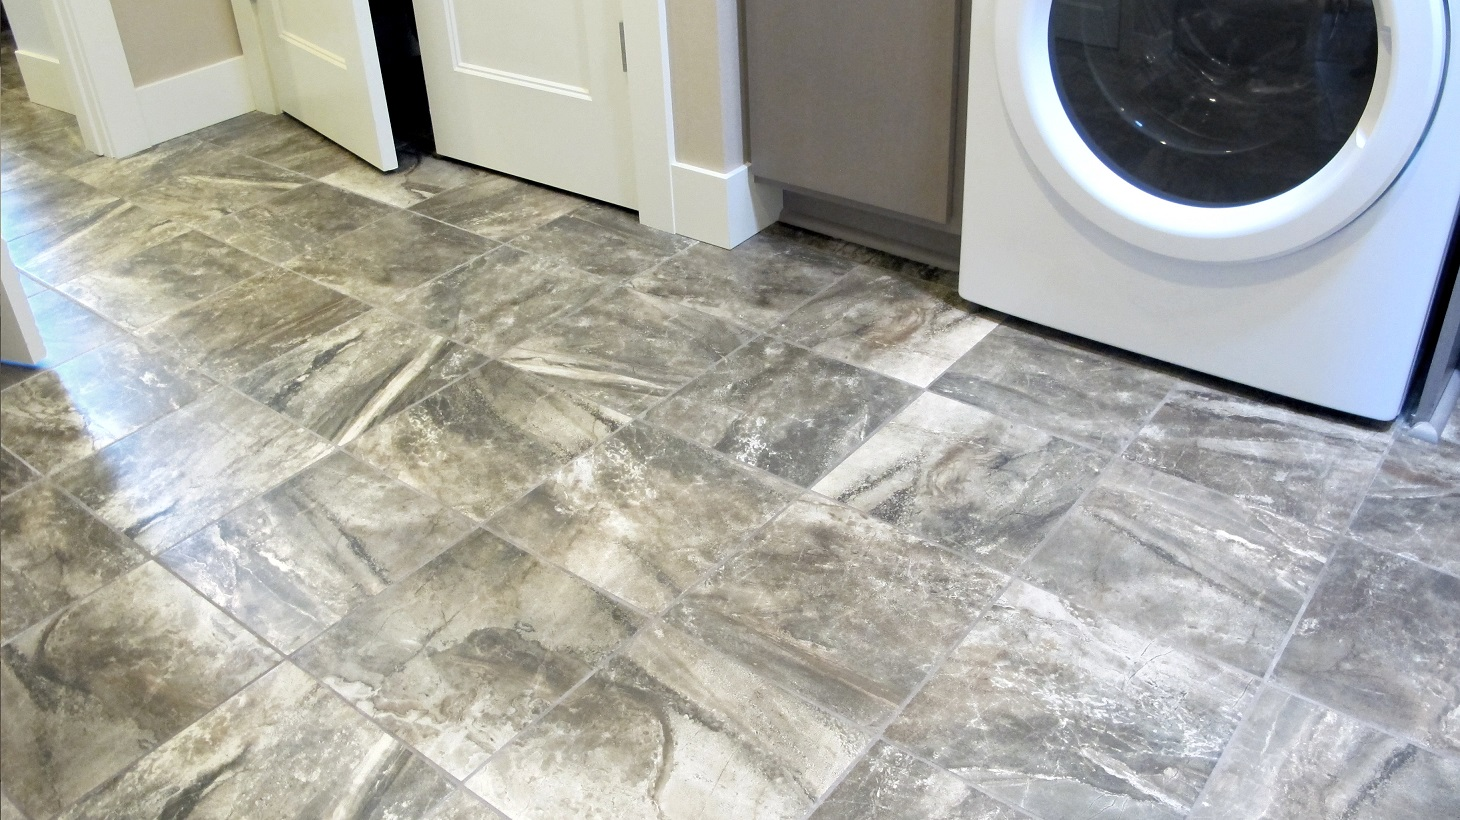 Laundry room white washer & dryer American Olean Danya Riverbed 12x12 brown pattern porcelain ceramic tile baseboard